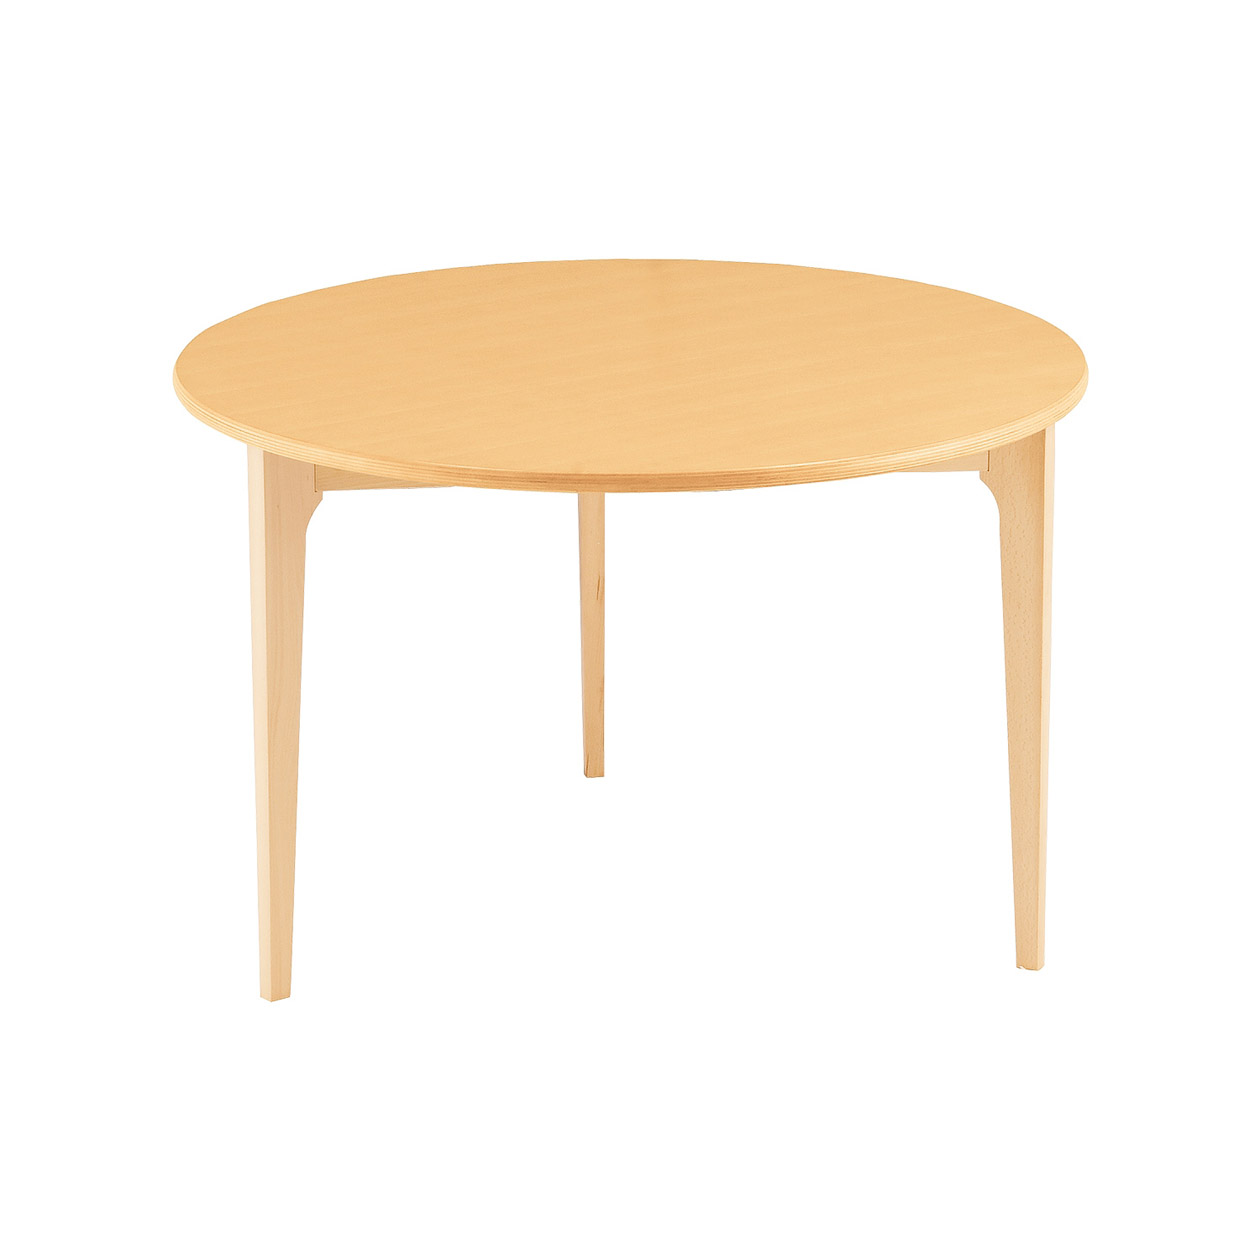 Muji Coffee Table Image collections Coffee Table Design  : 45493377273731260 from geotapseo.com size 1260 x 1260 jpeg 98kB